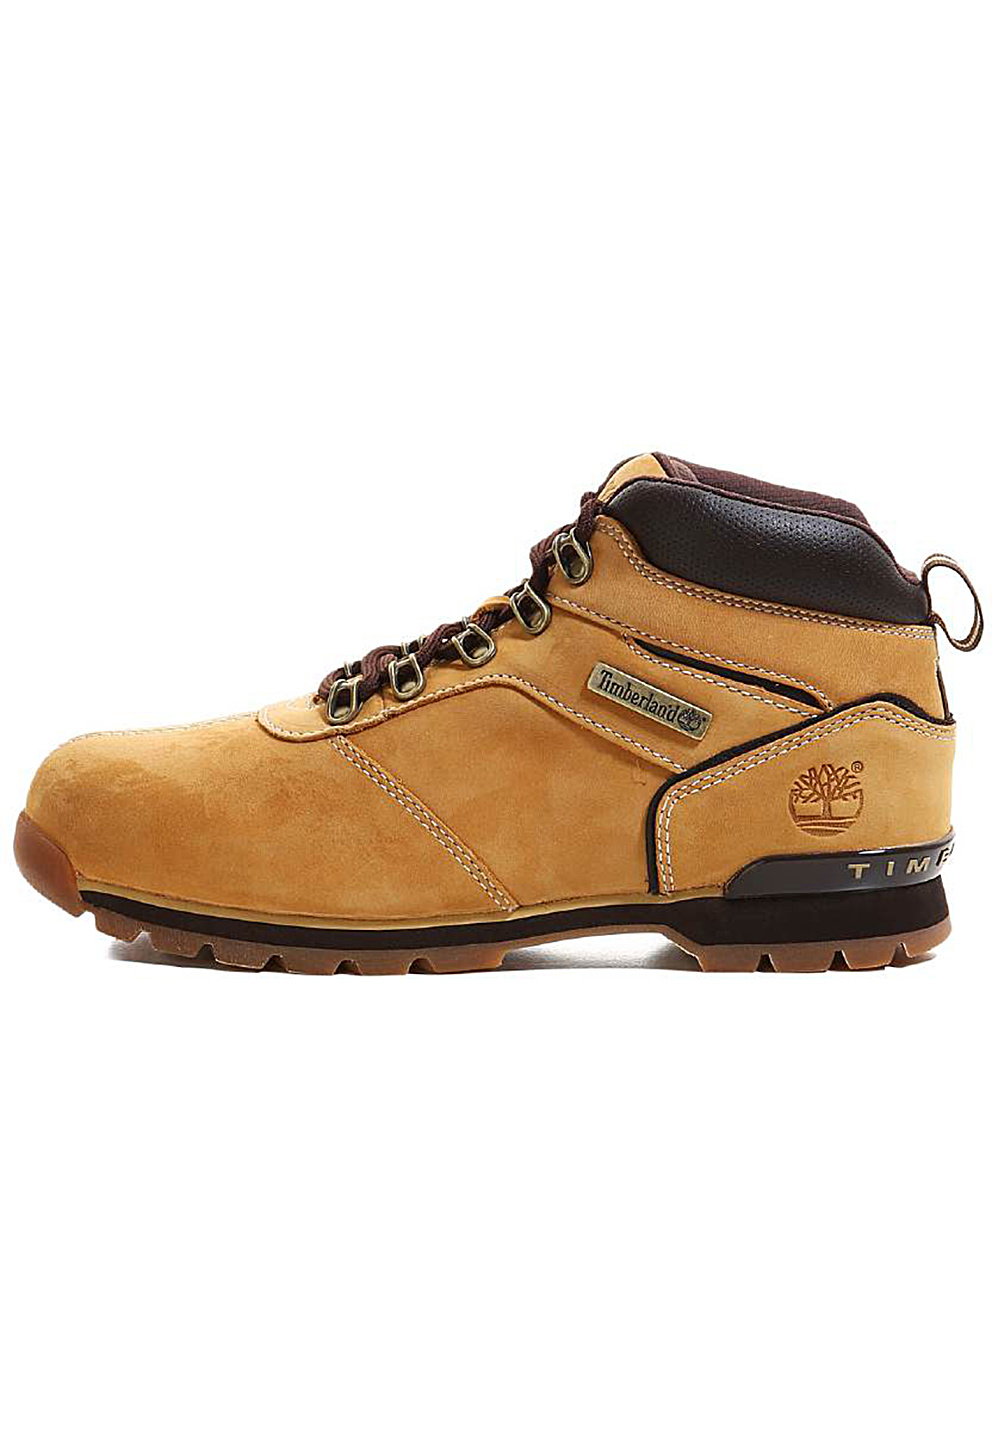 2 TIMBERLAND Planet Splitrock Marrone per Sports Stivali Uomo 5A7qwfA